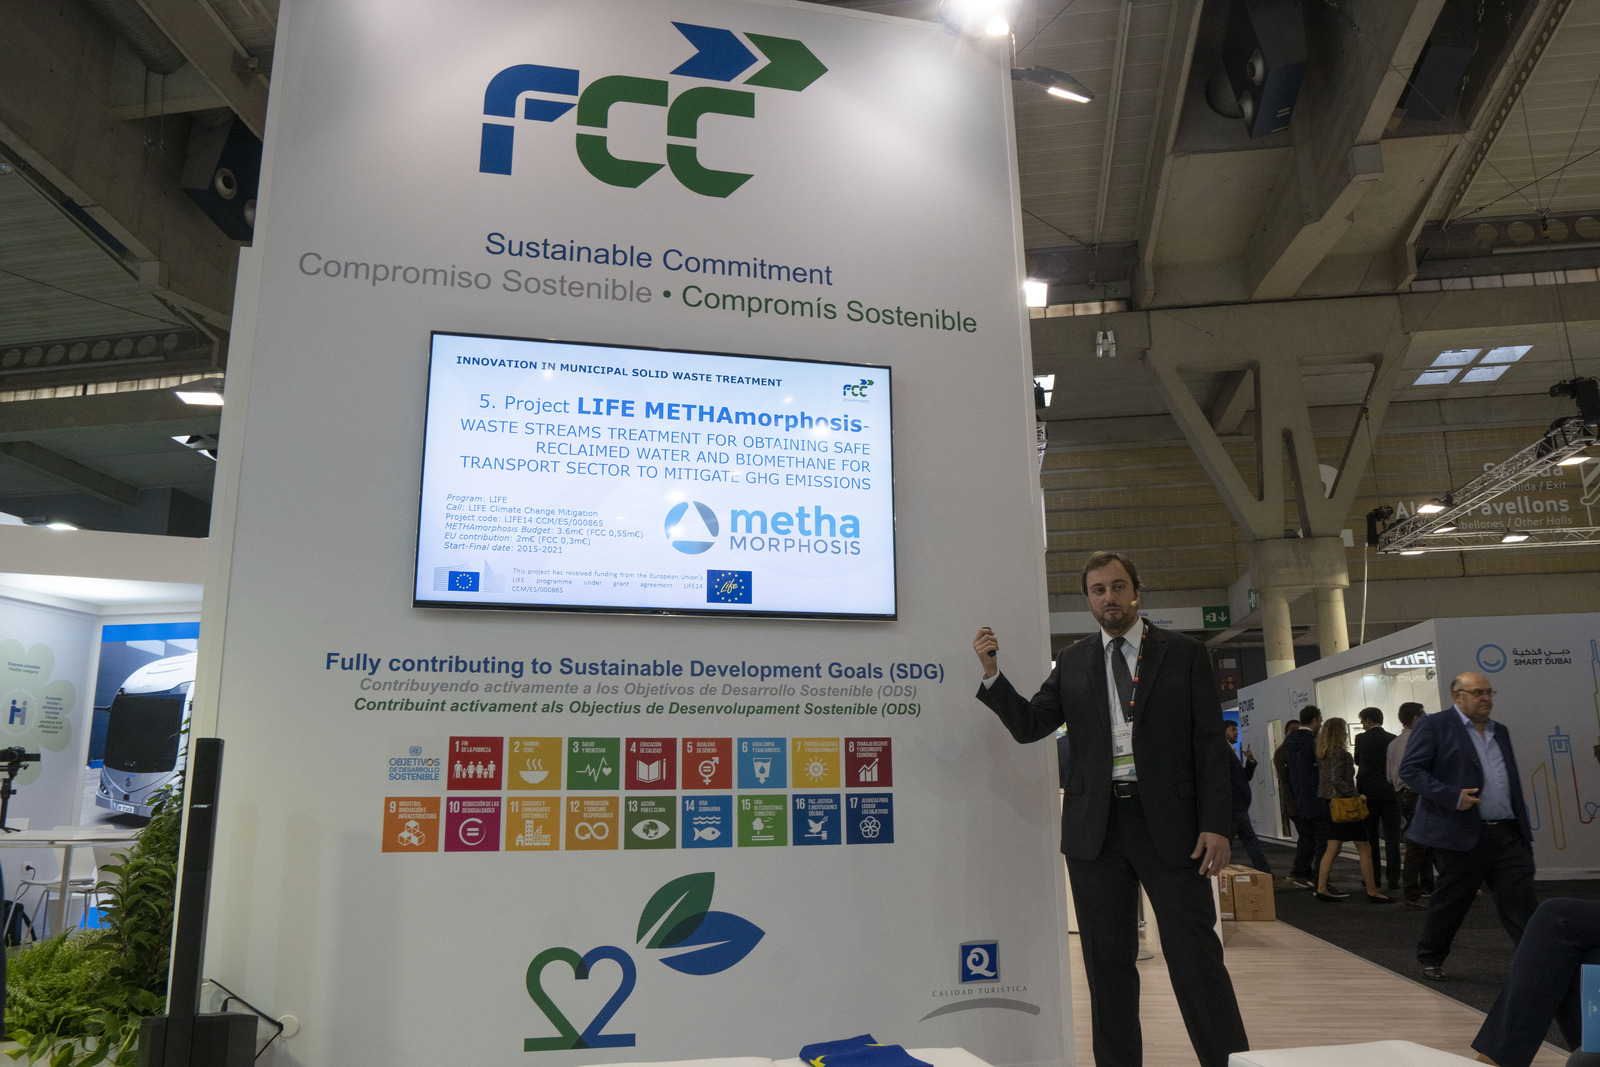 FCC MA en el Smart City